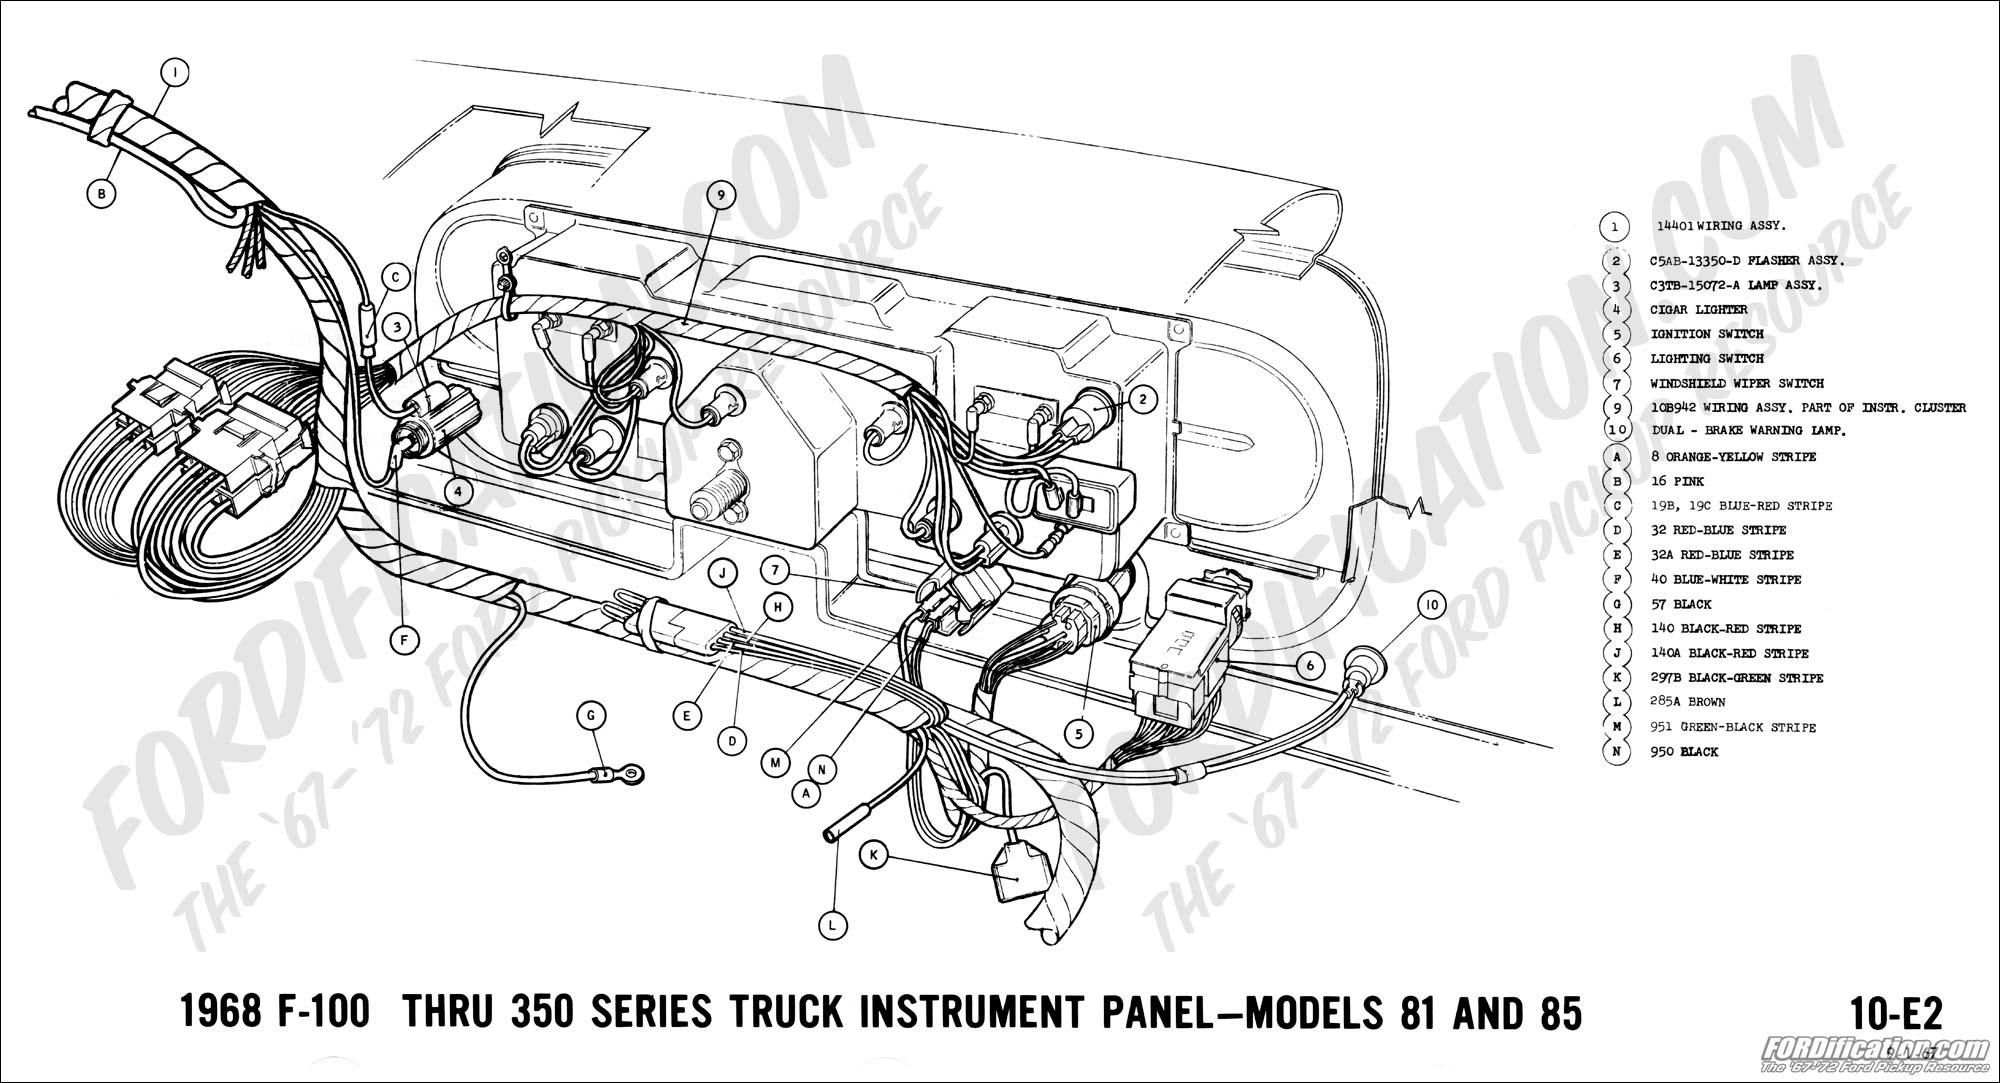 350 Chevy Heater Diagram Block And Schematic Diagrams 1968 Firing Order Ford Truck Technical Drawings Schematics Section H Engine Specs Parts